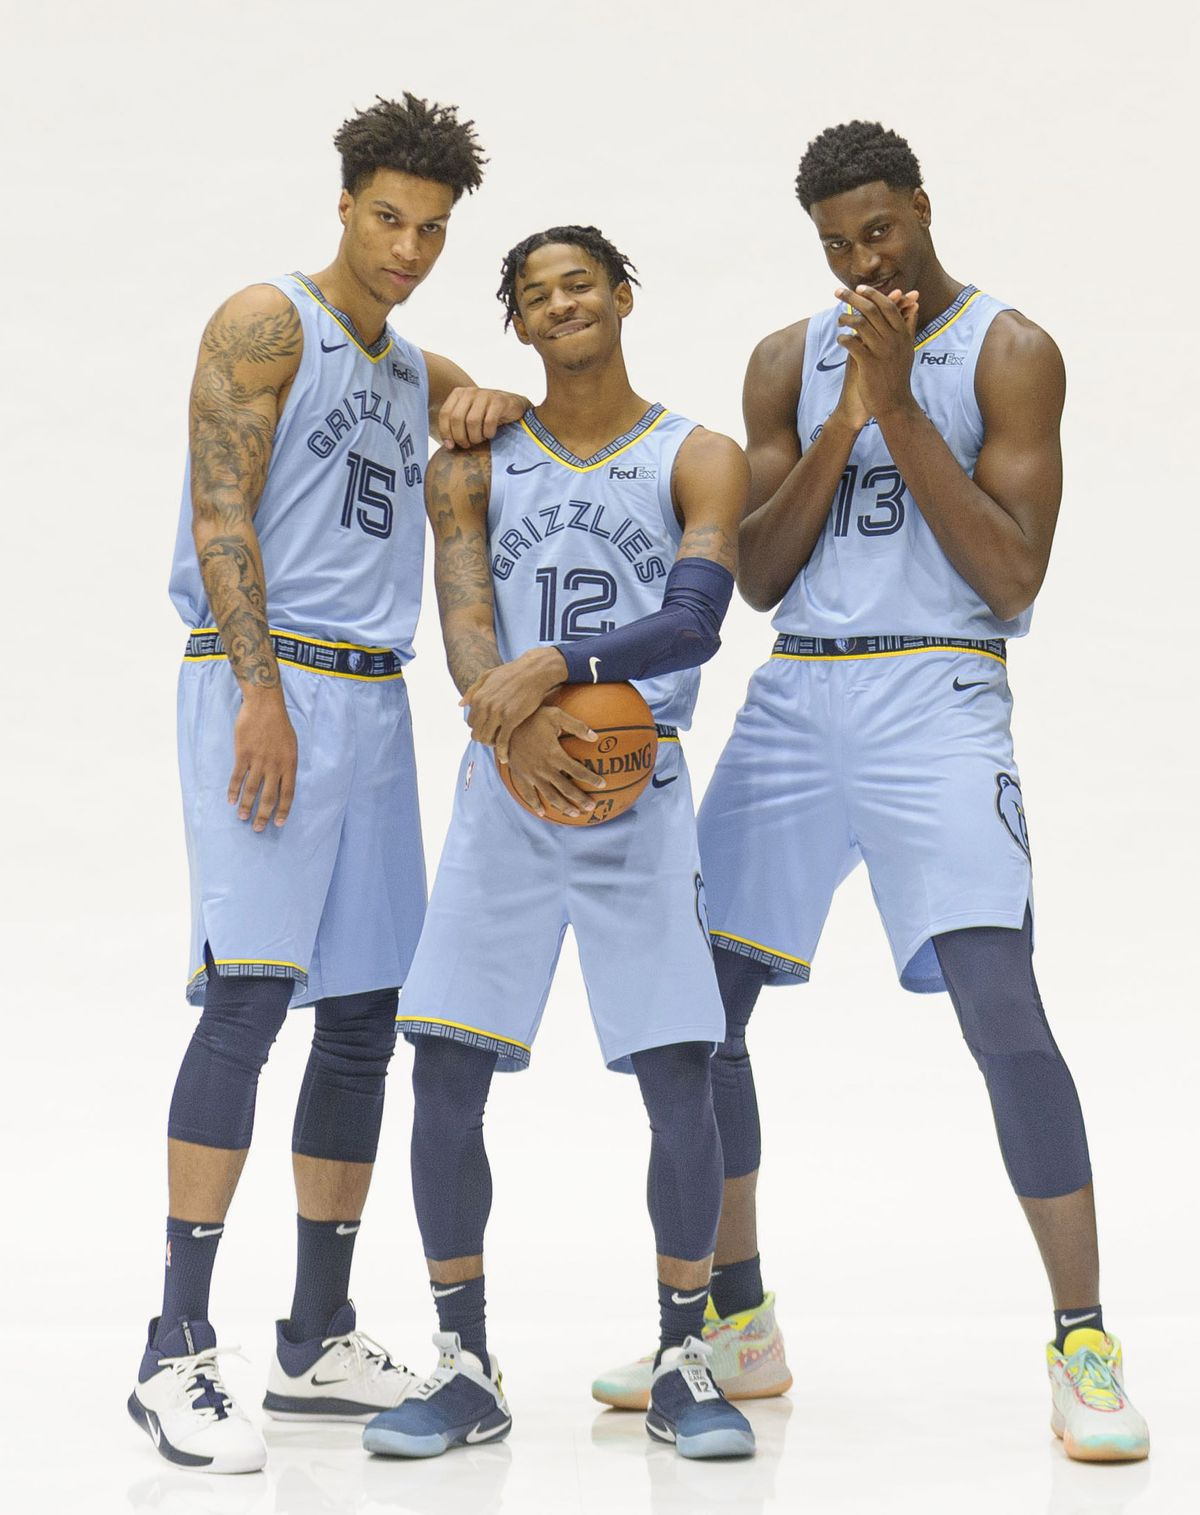 Best Nba Players 2020.Memphis Grizzlies 2019 2020 Player Previews Ja Morant